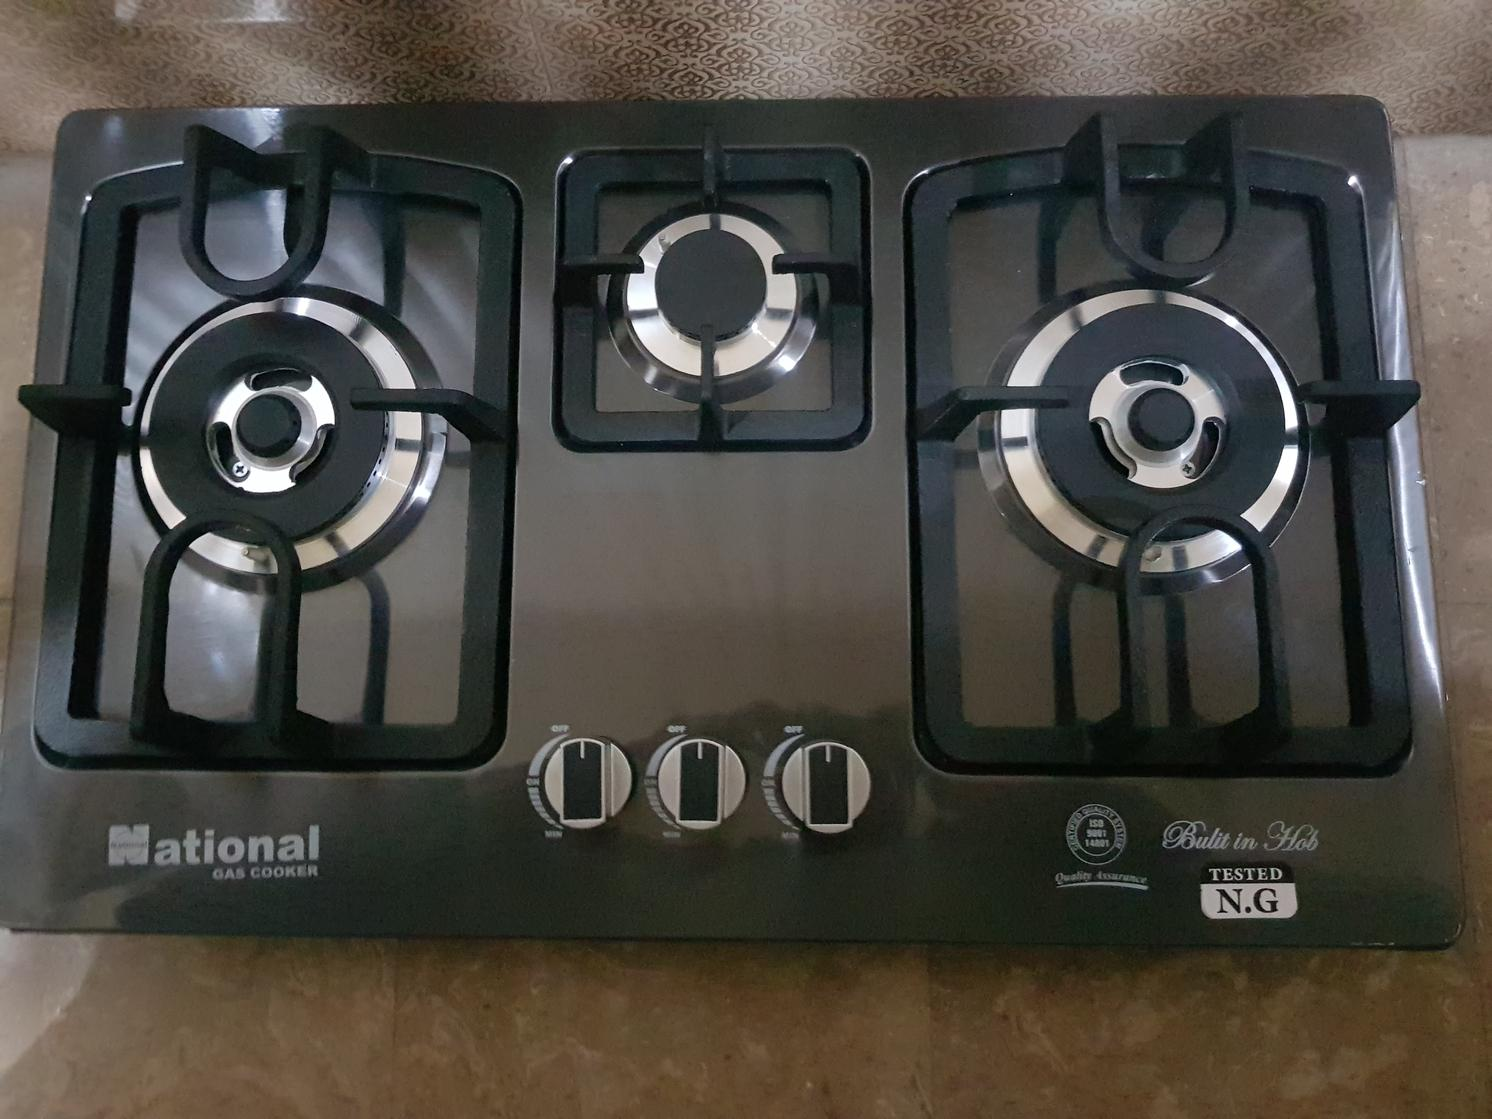 Factors to Consider While Investing in Gas Stoves